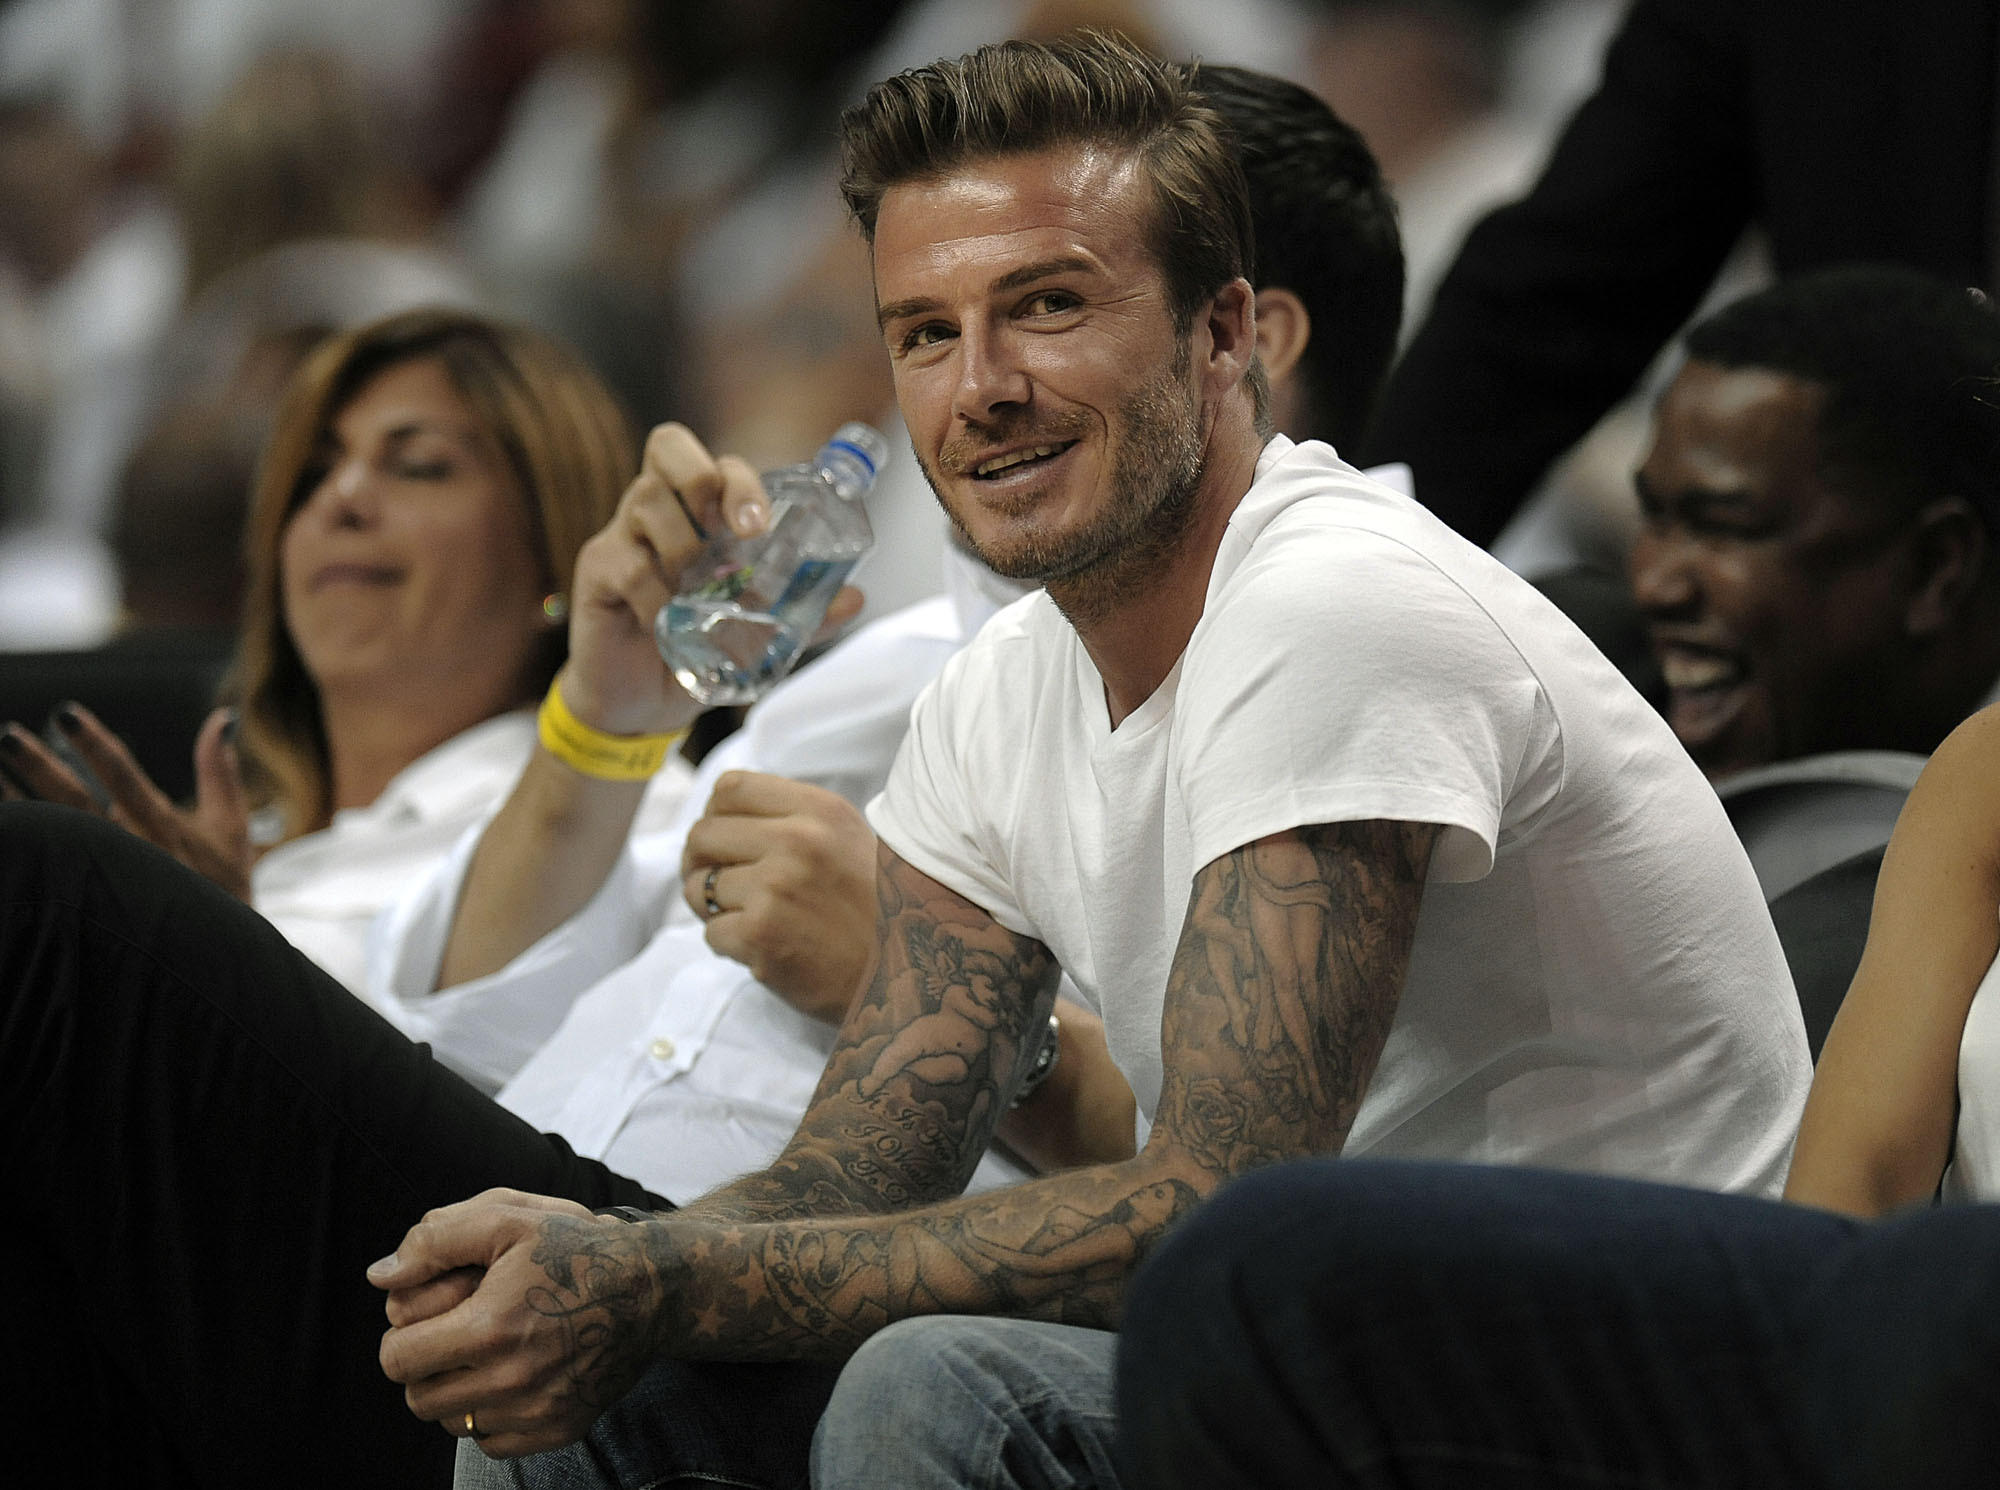 David Beckham watches a Miami Heat game at AmericanAirlines Arena.